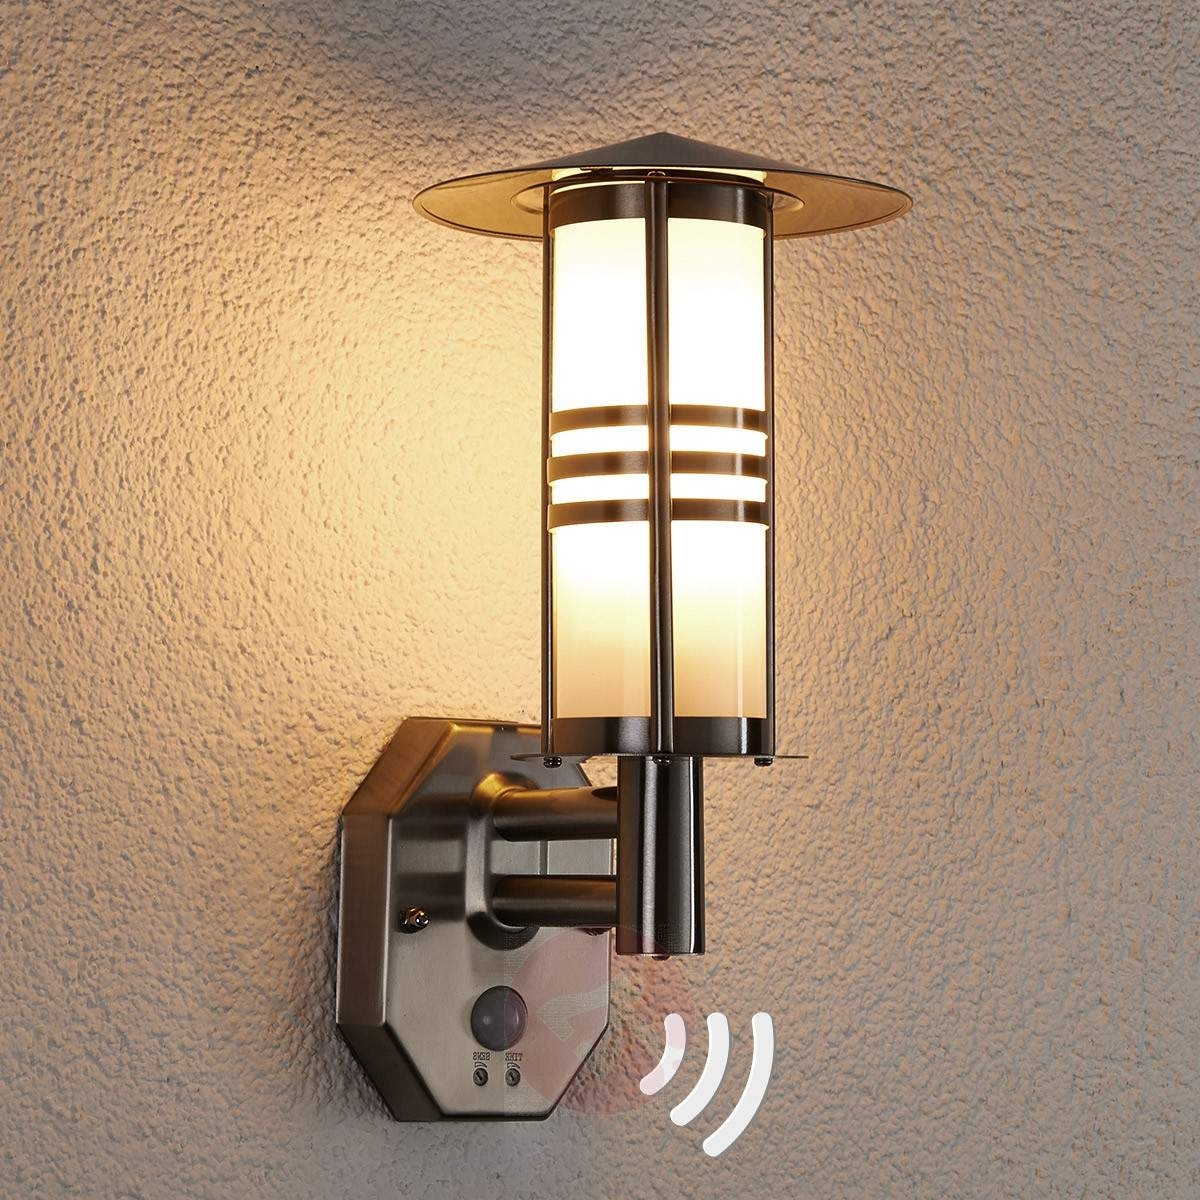 Favorite Led Outdoor Wall Lights Lanea With Motion Sensor Throughout Furniture : Wall Lights Outside Motion Sensor Lighting Product (View 19 of 20)